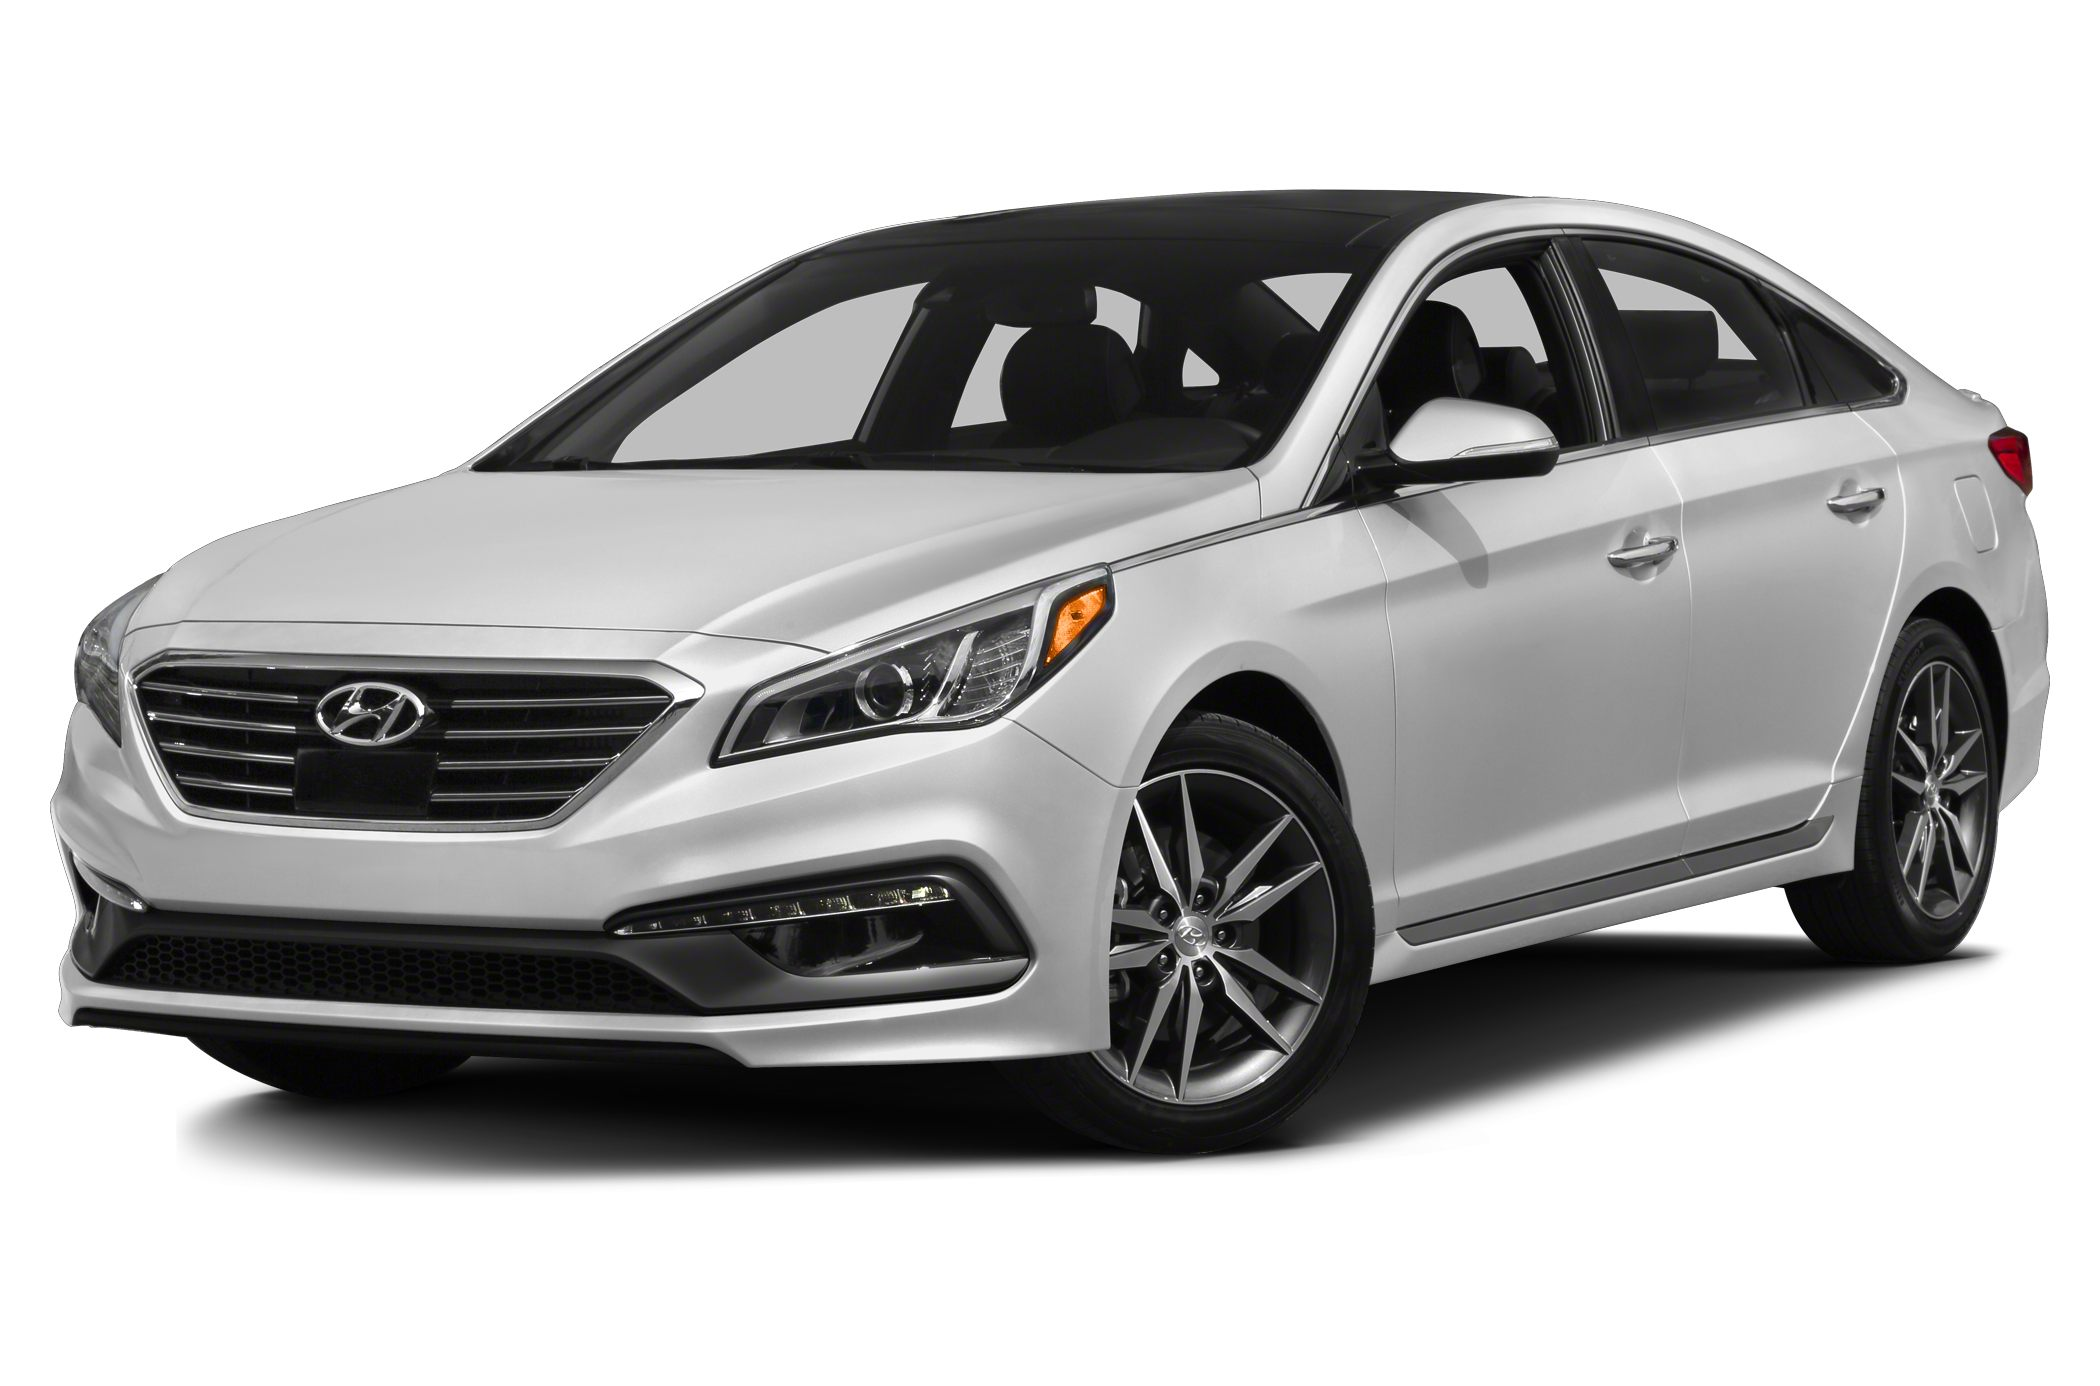 2015 Hyundai Sonata SE Sedan for sale in Watertown for $23,315 with 0 miles.